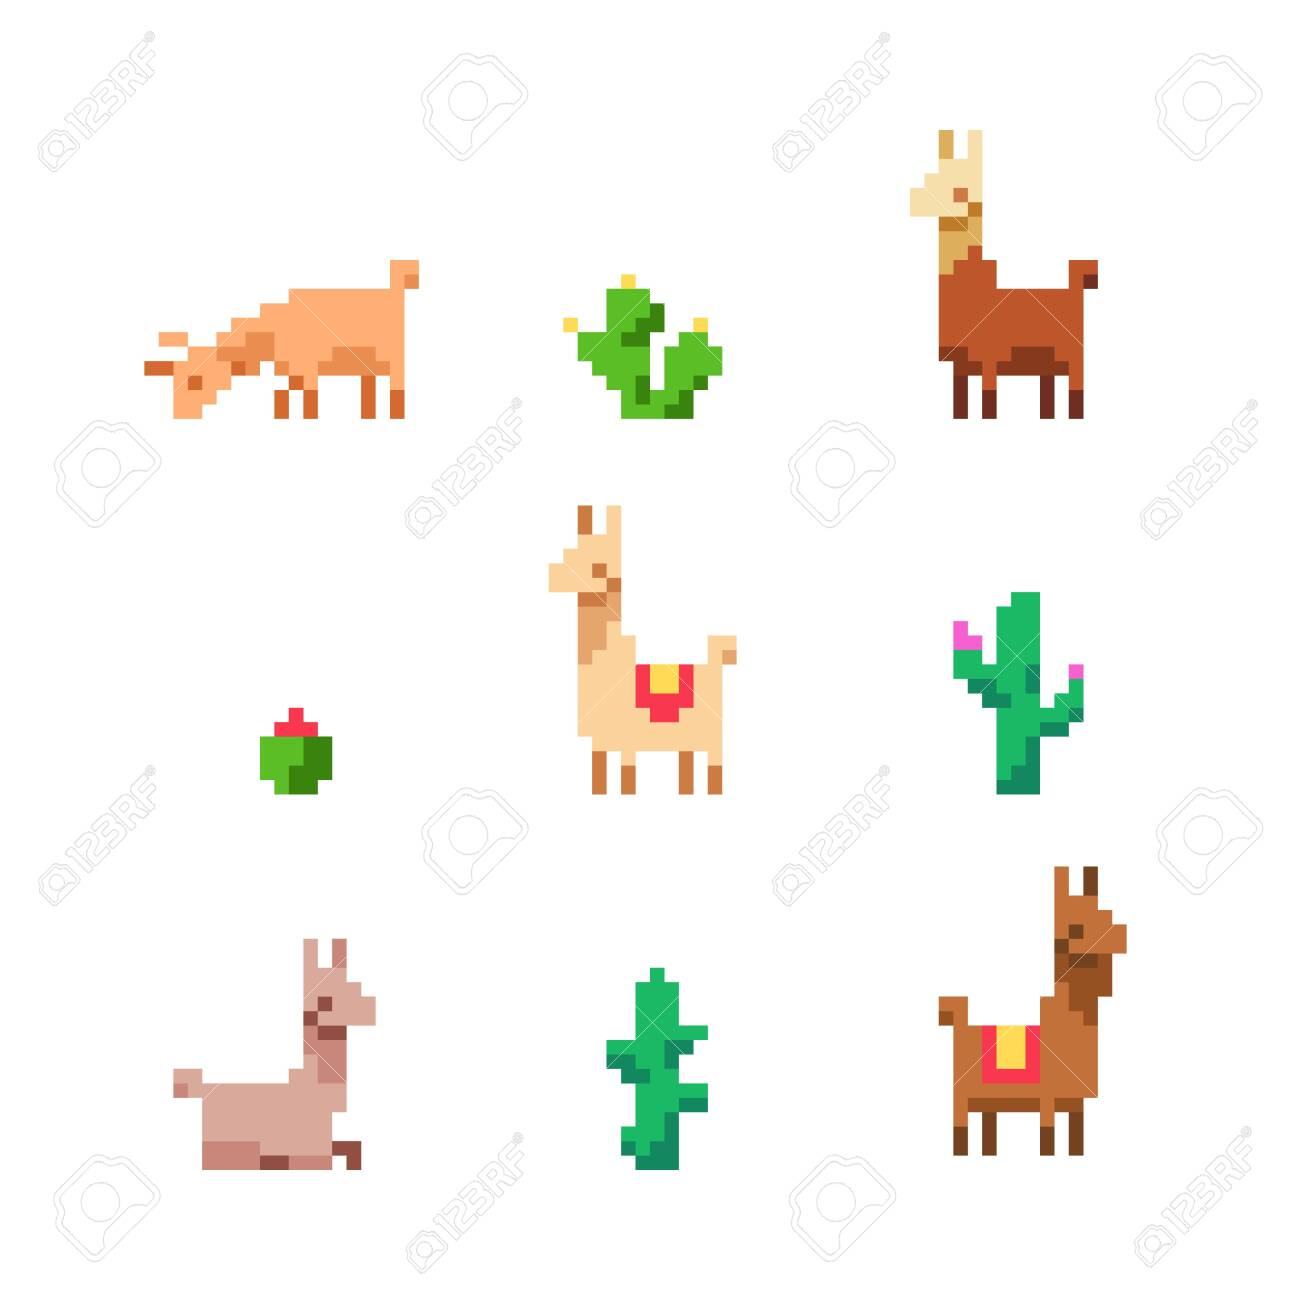 Set Of Cute Pixel Art Lamas And Cacti On White Background Royalty Free Cliparts Vectors And Stock Illustration Image 147698050